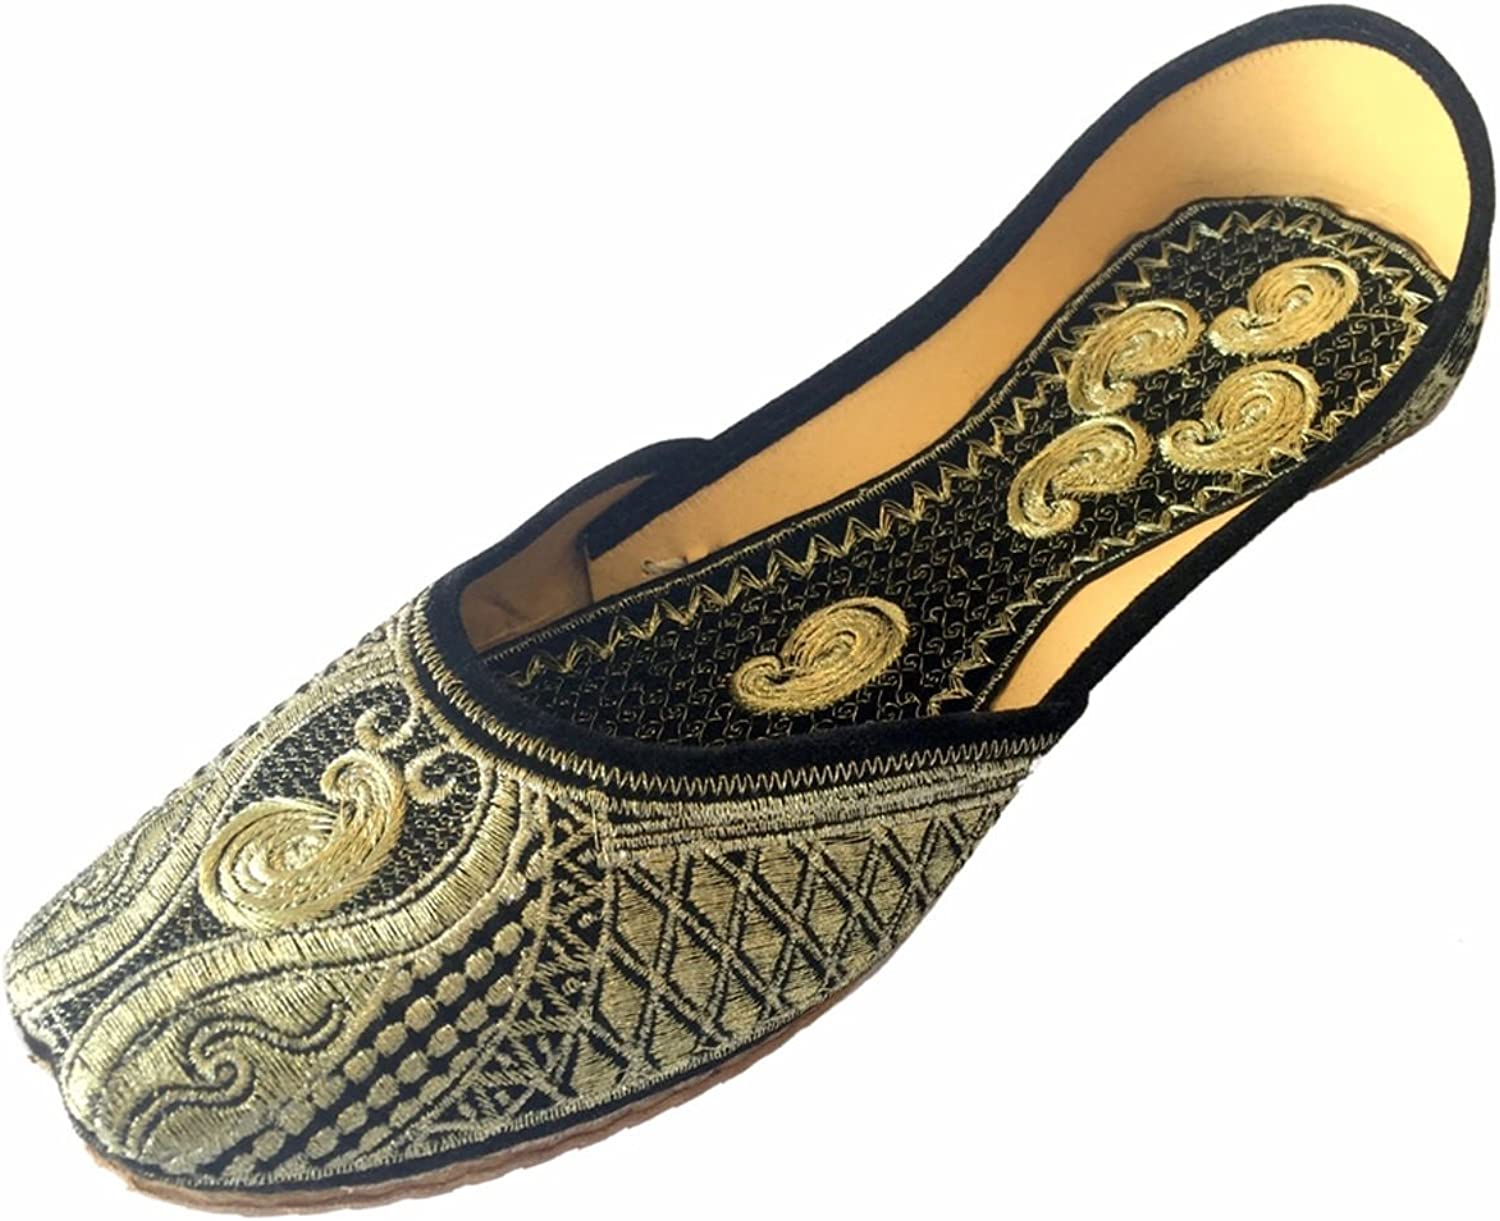 Step n Style Women's Leather Khussa Flat Sandals Loafer Jaipuri Jutti shoes